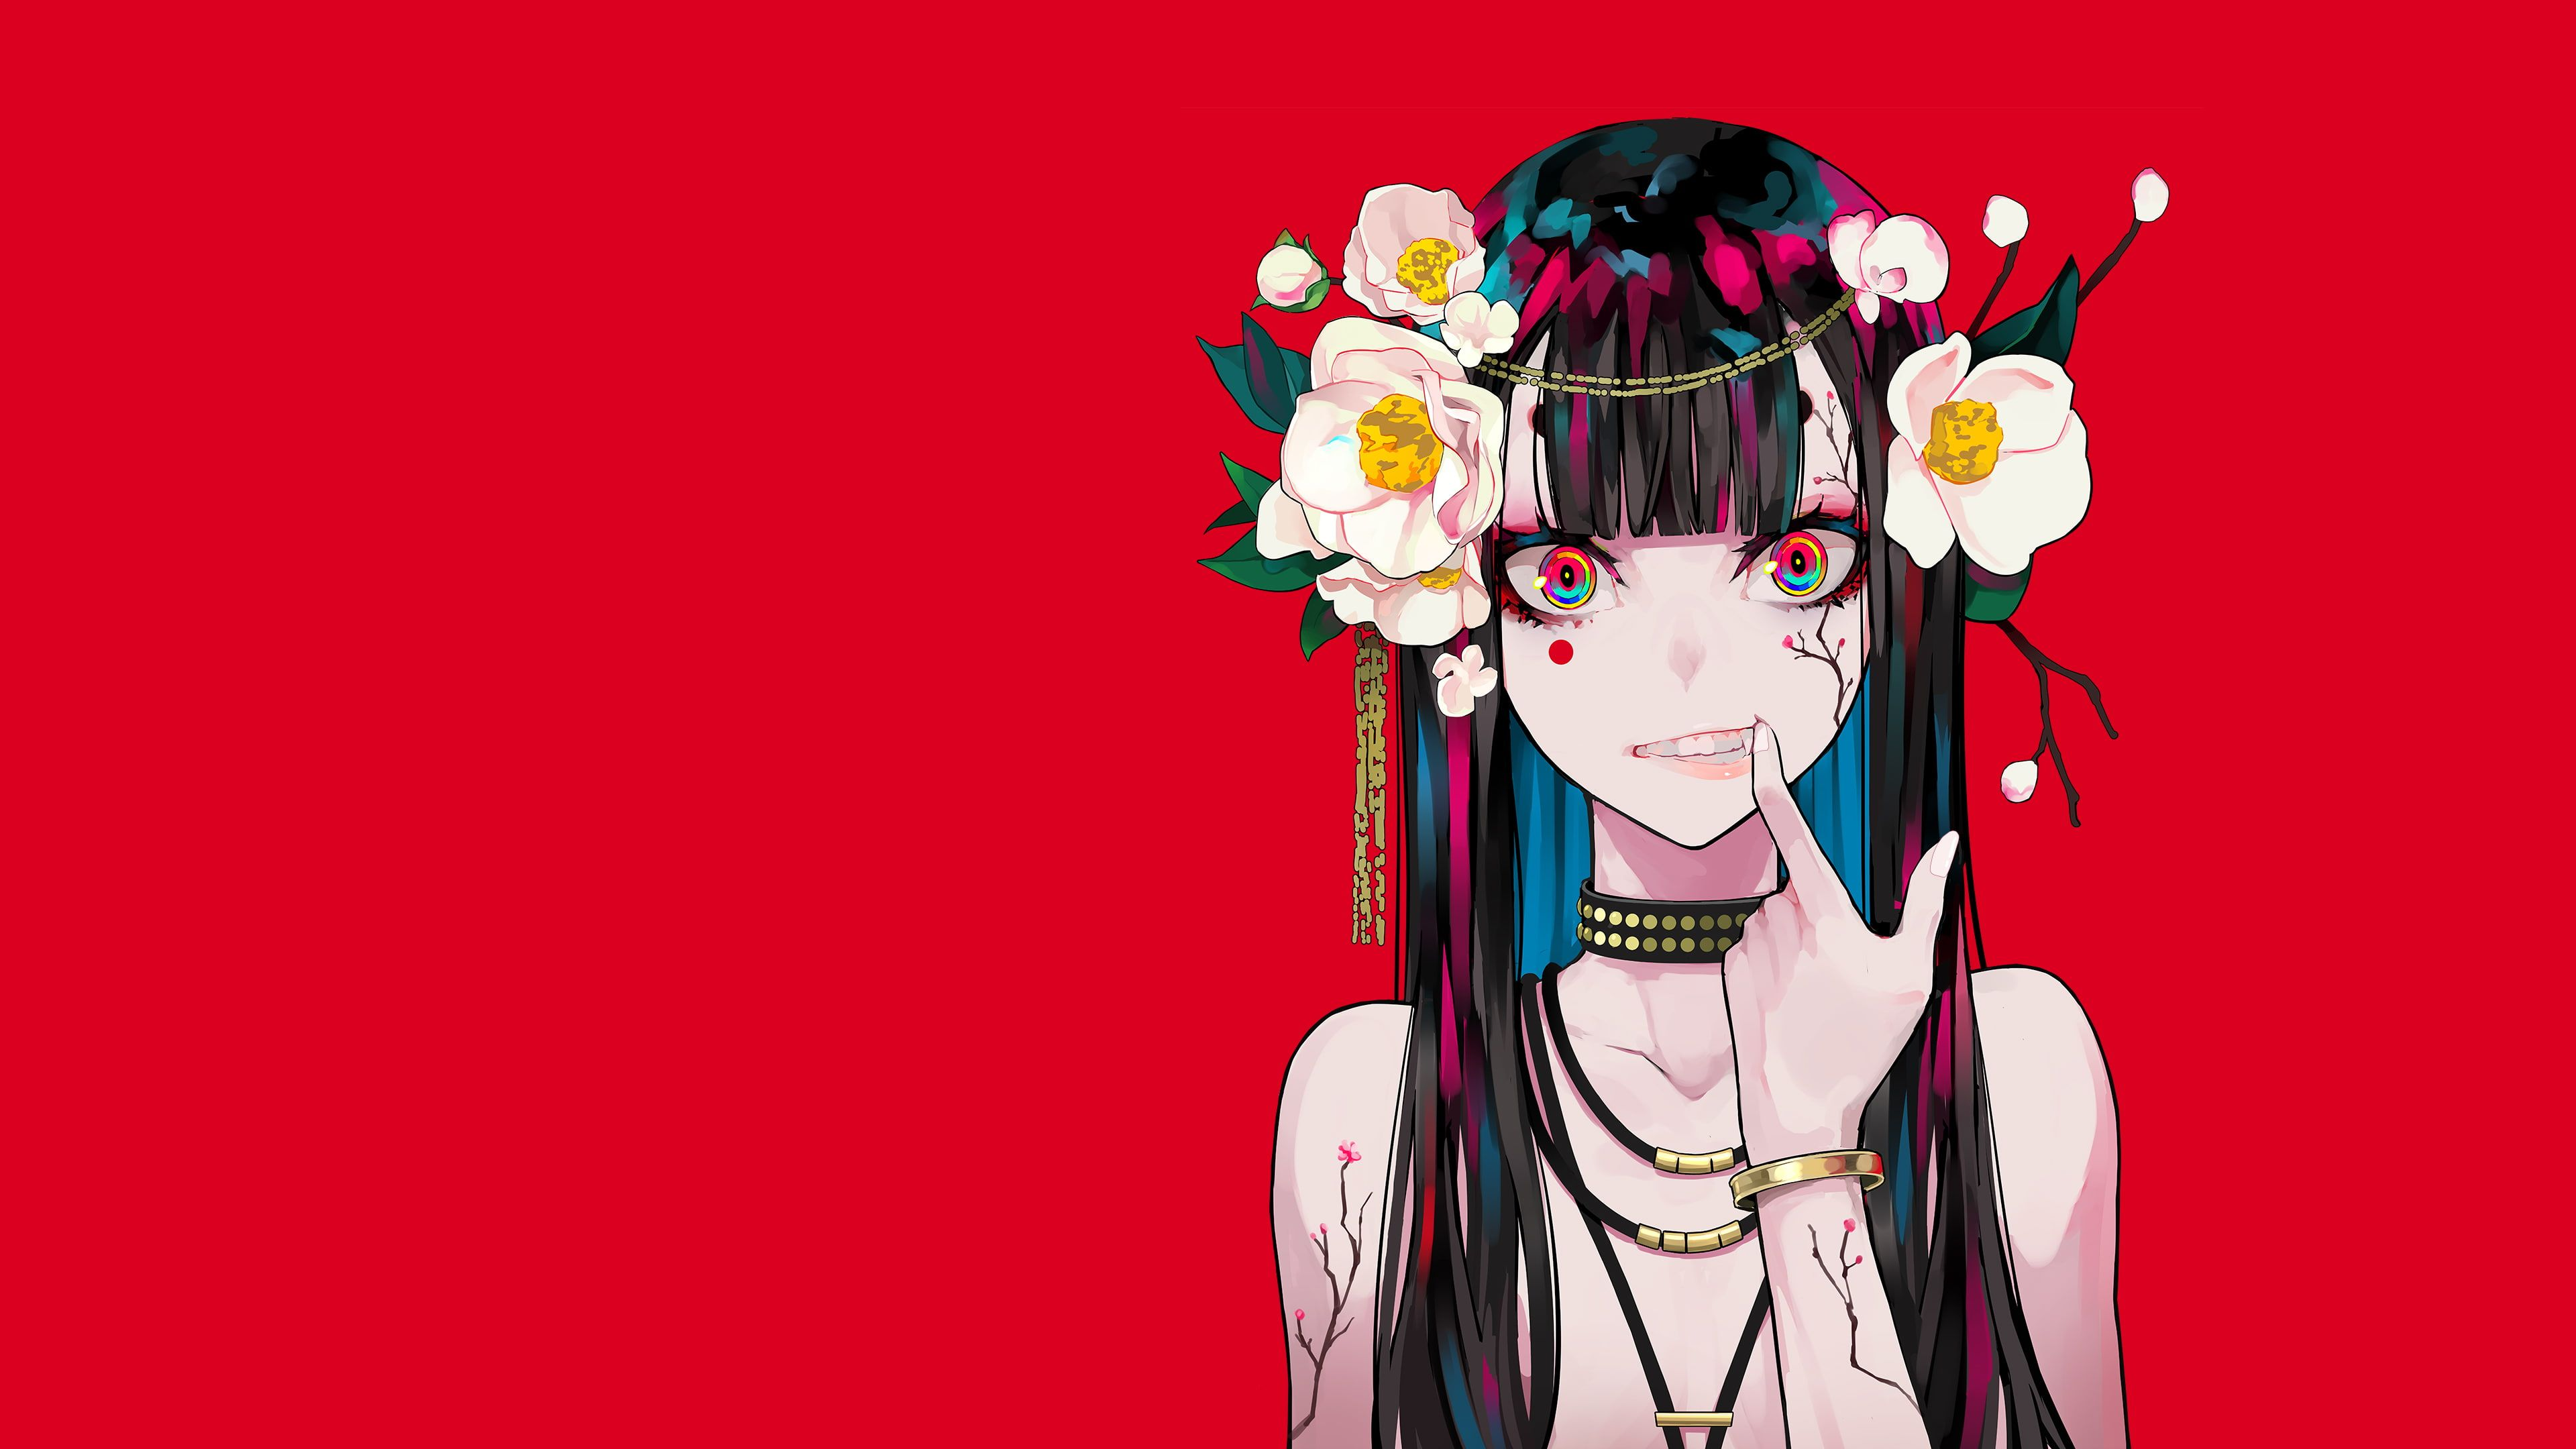 artwork minimalism anime girls anime flower in hair red